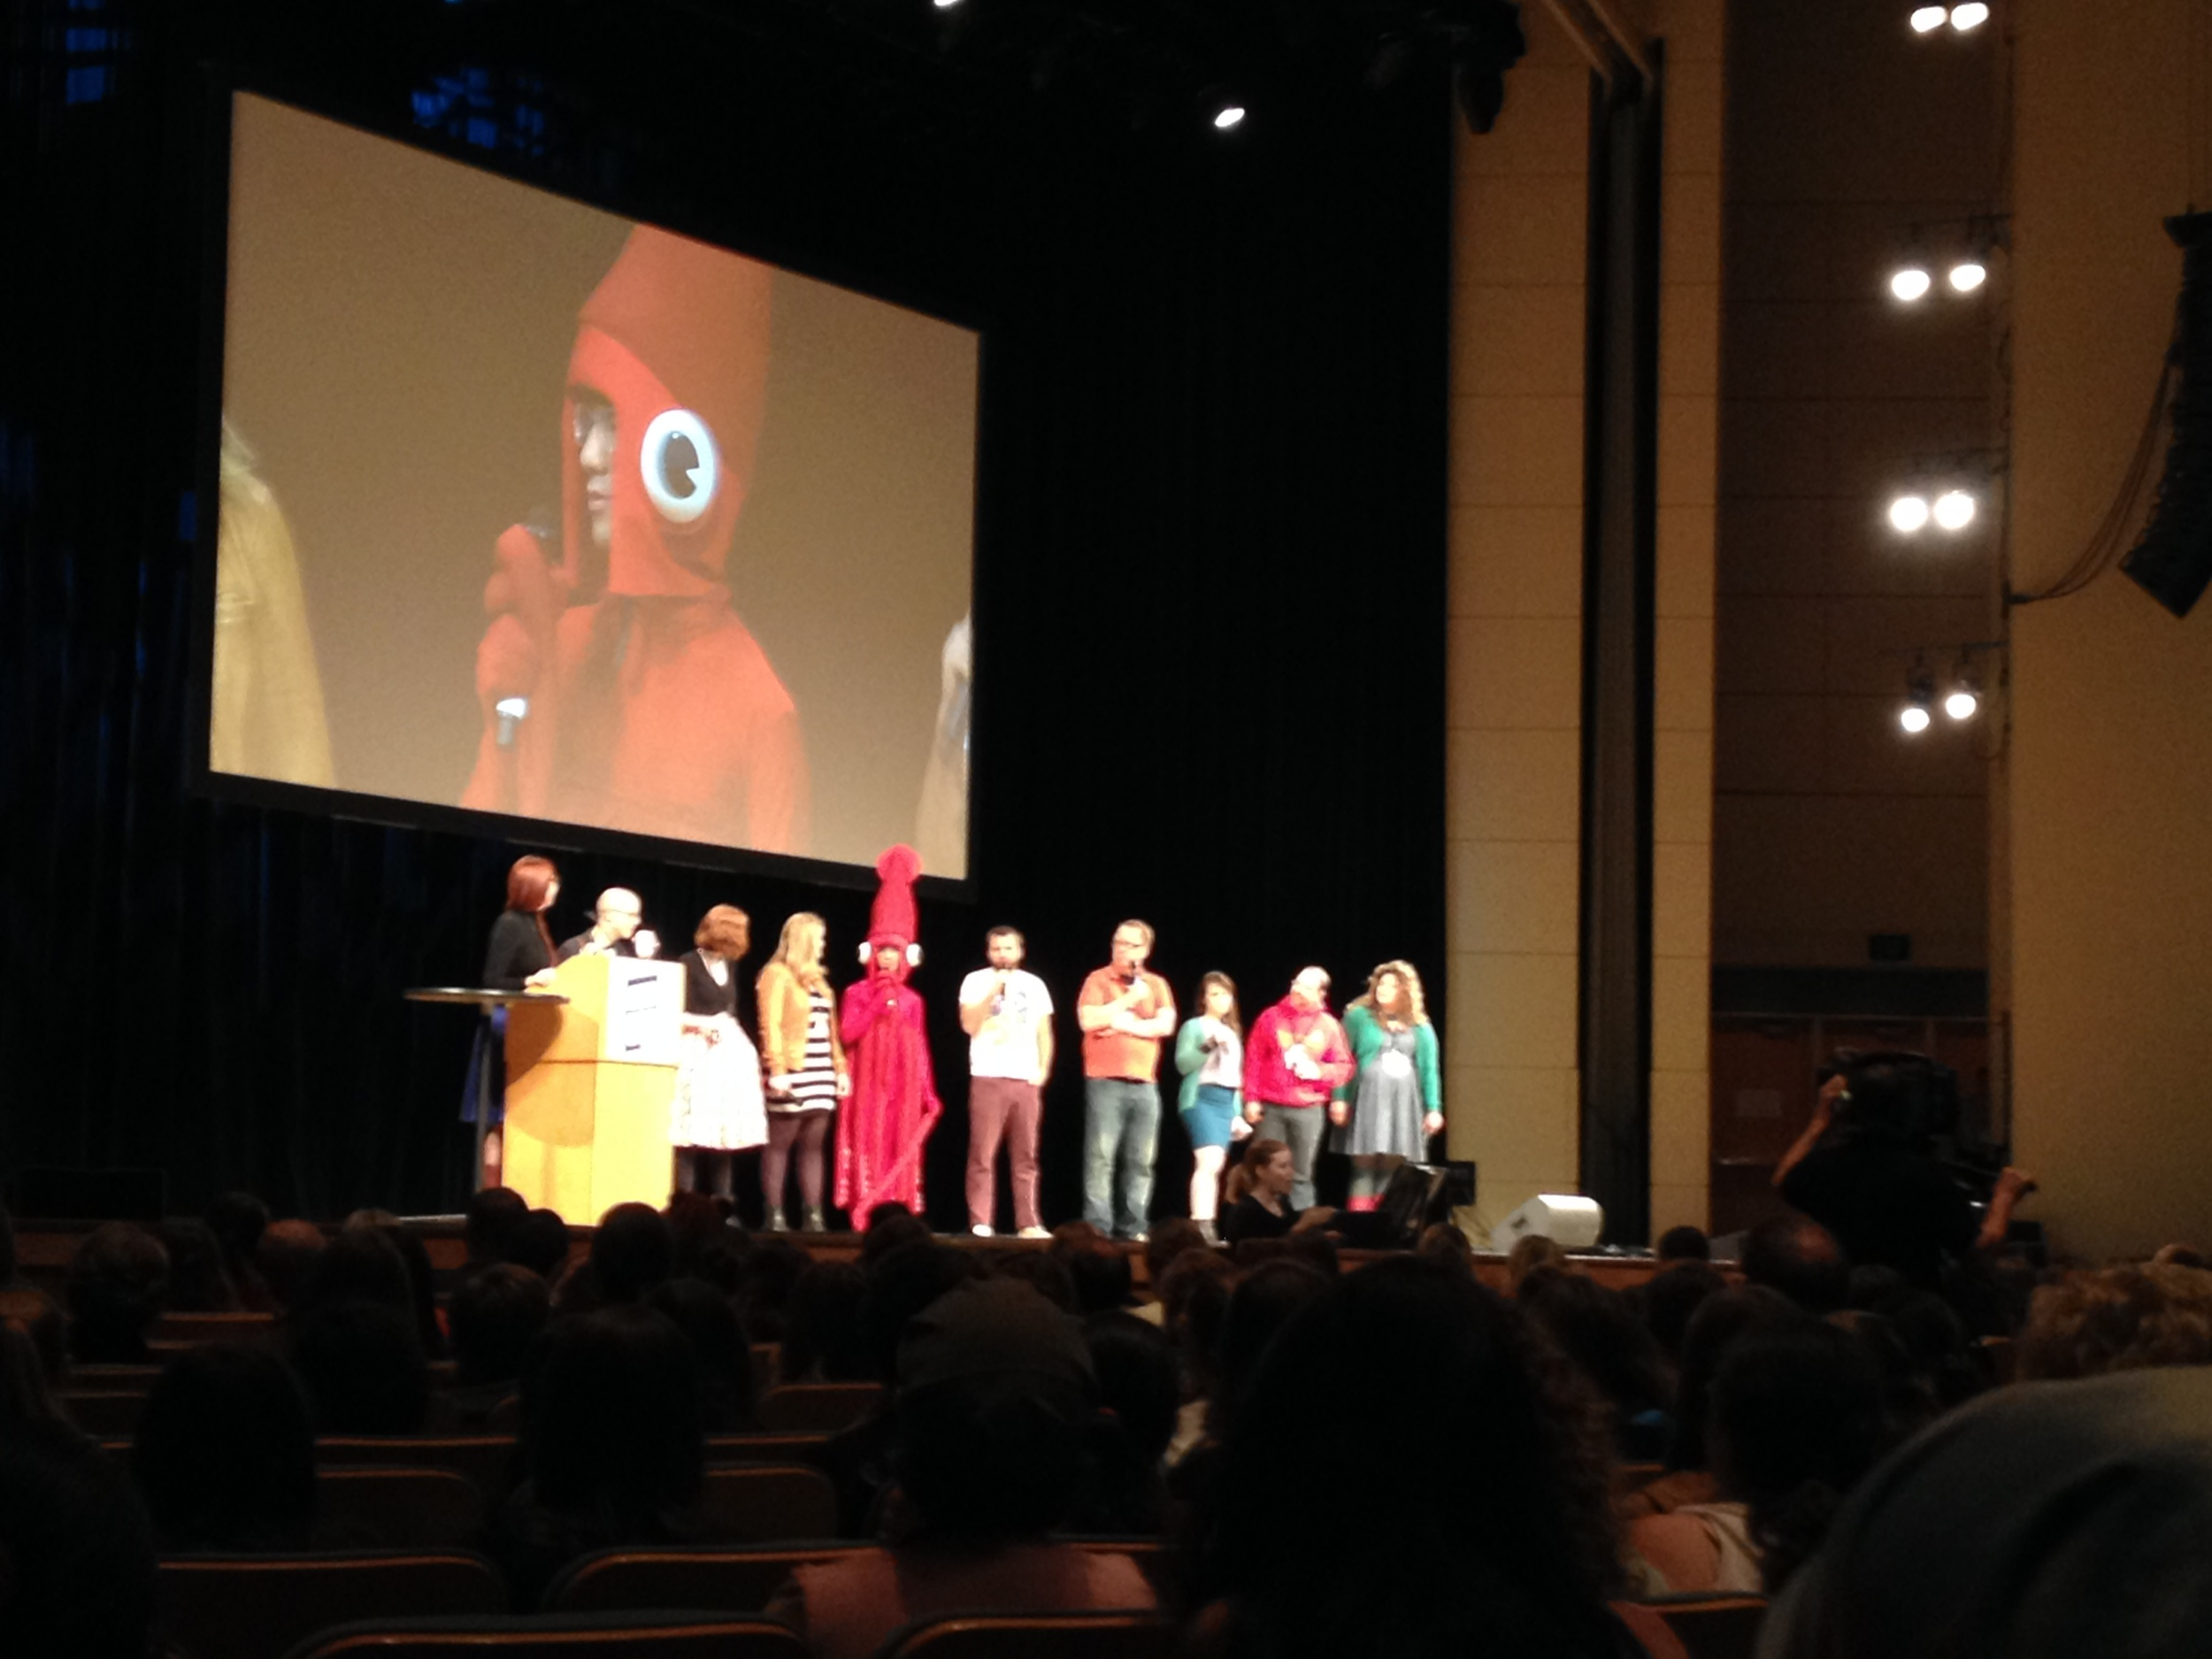 Rapid-fire question and answer with famous people and a squid at NerdCon: Stories